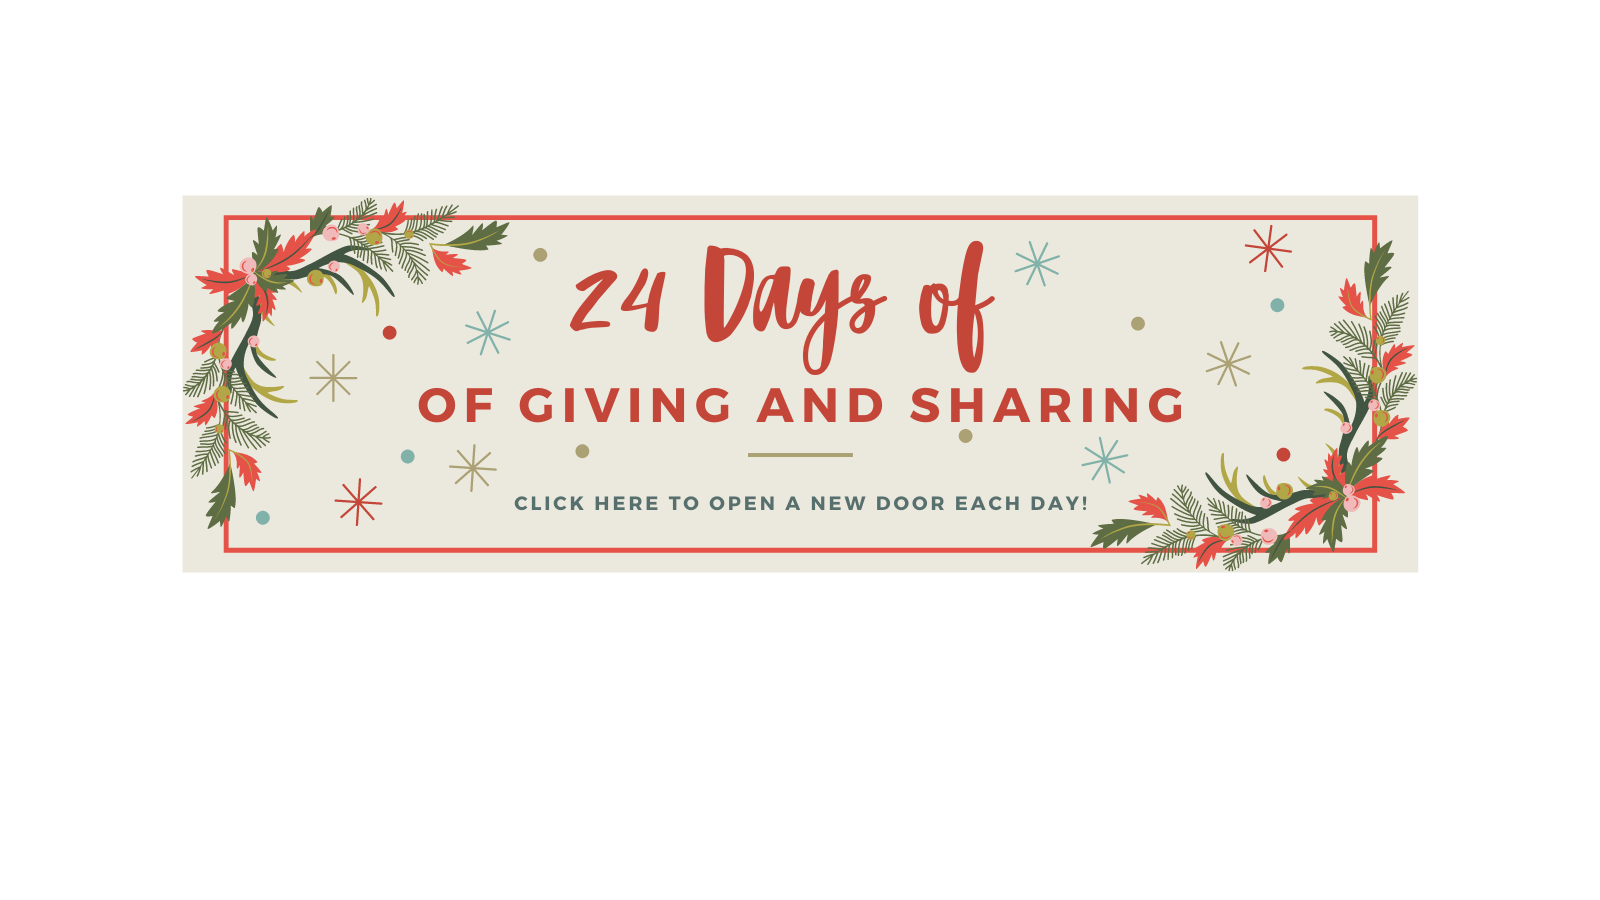 CLICK HERE to view our holida giving and sharing calendar.